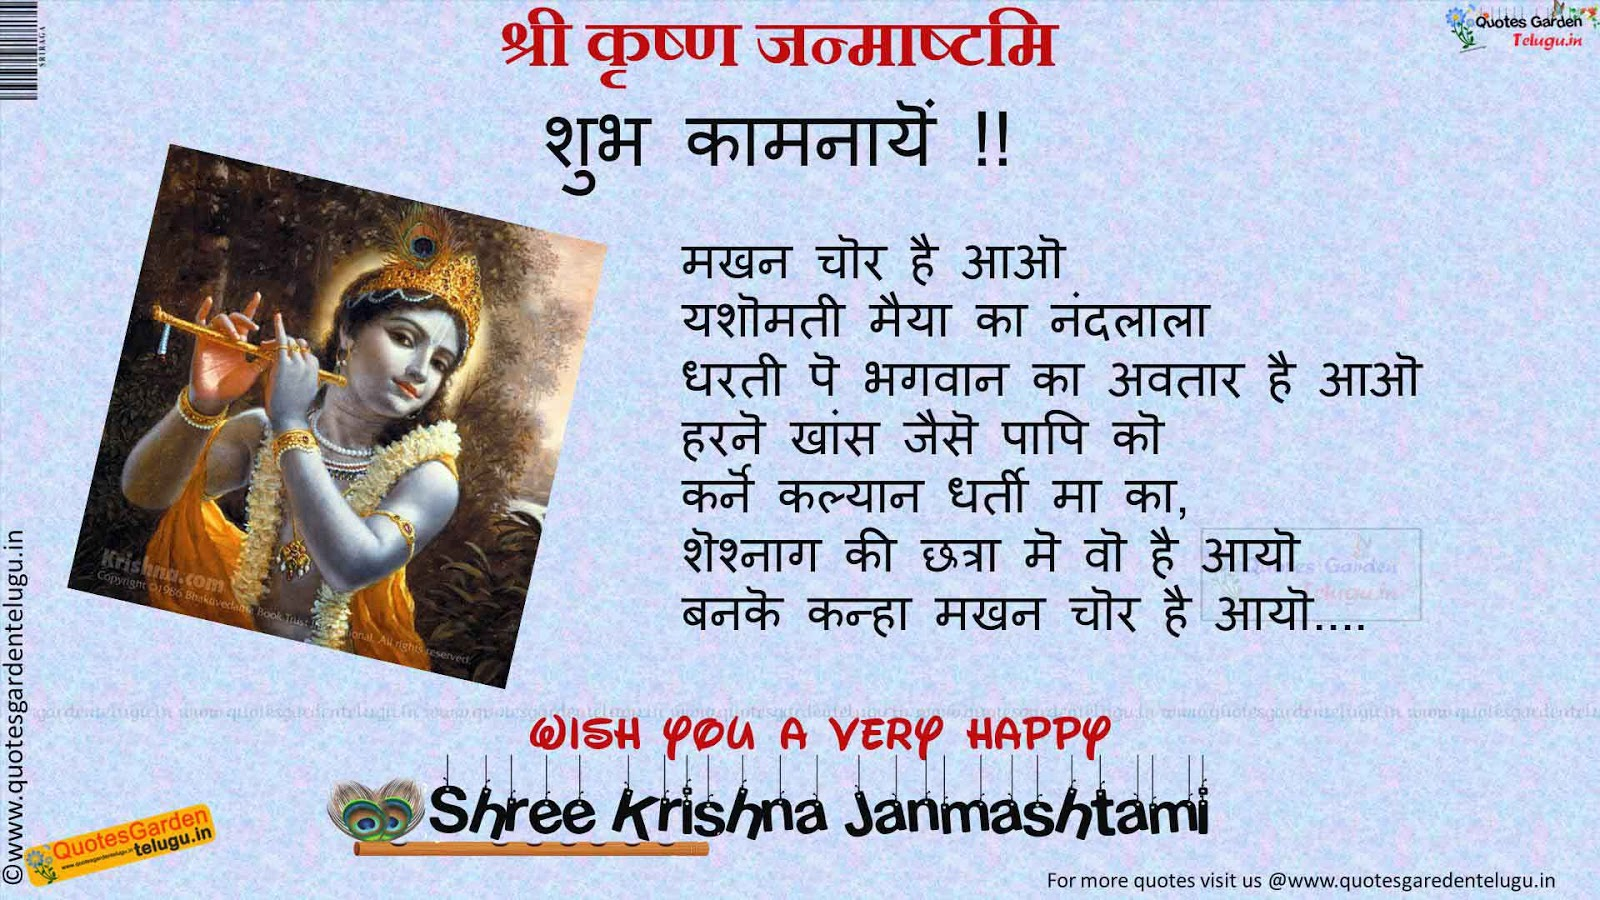 Best Whatsapp Status Sms Messages Quotes Wallpapers Happy Krishna Janmashtami 2015 Greetings Wallpapers Images